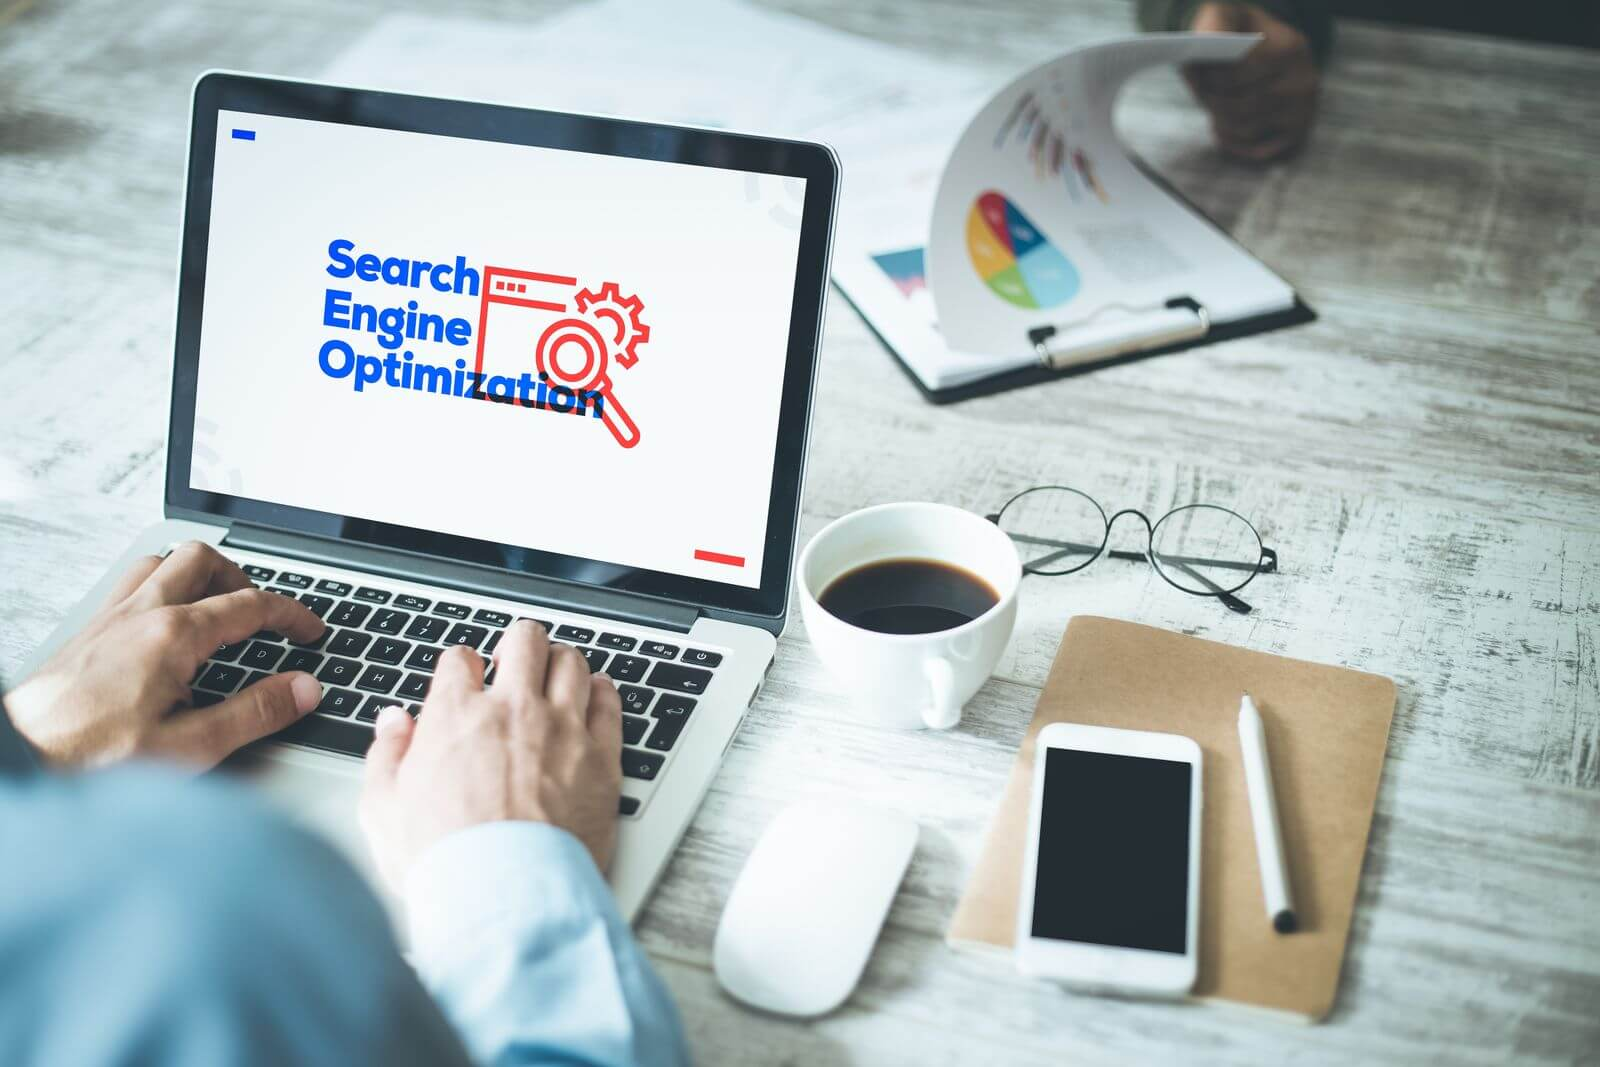 Search engine optimization for digital marketing